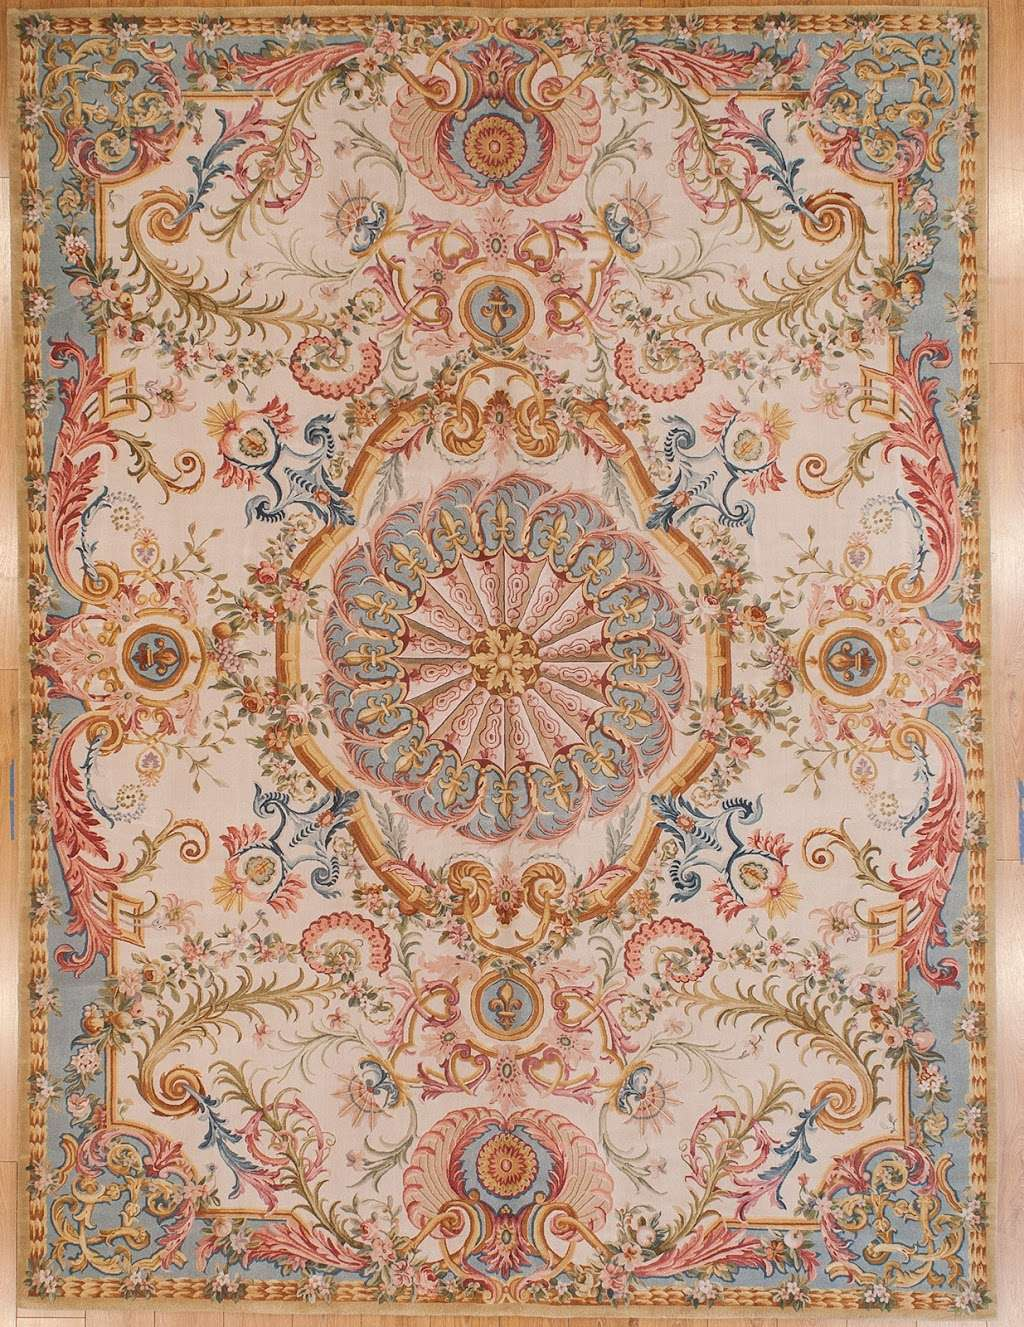 ModRen Rugs Inc Aubusson Savonnerie Tapestry - home goods store  | Photo 4 of 7 | Address: 505 Windsor Dr, Secaucus, NJ 07094, USA | Phone: (201) 866-0909